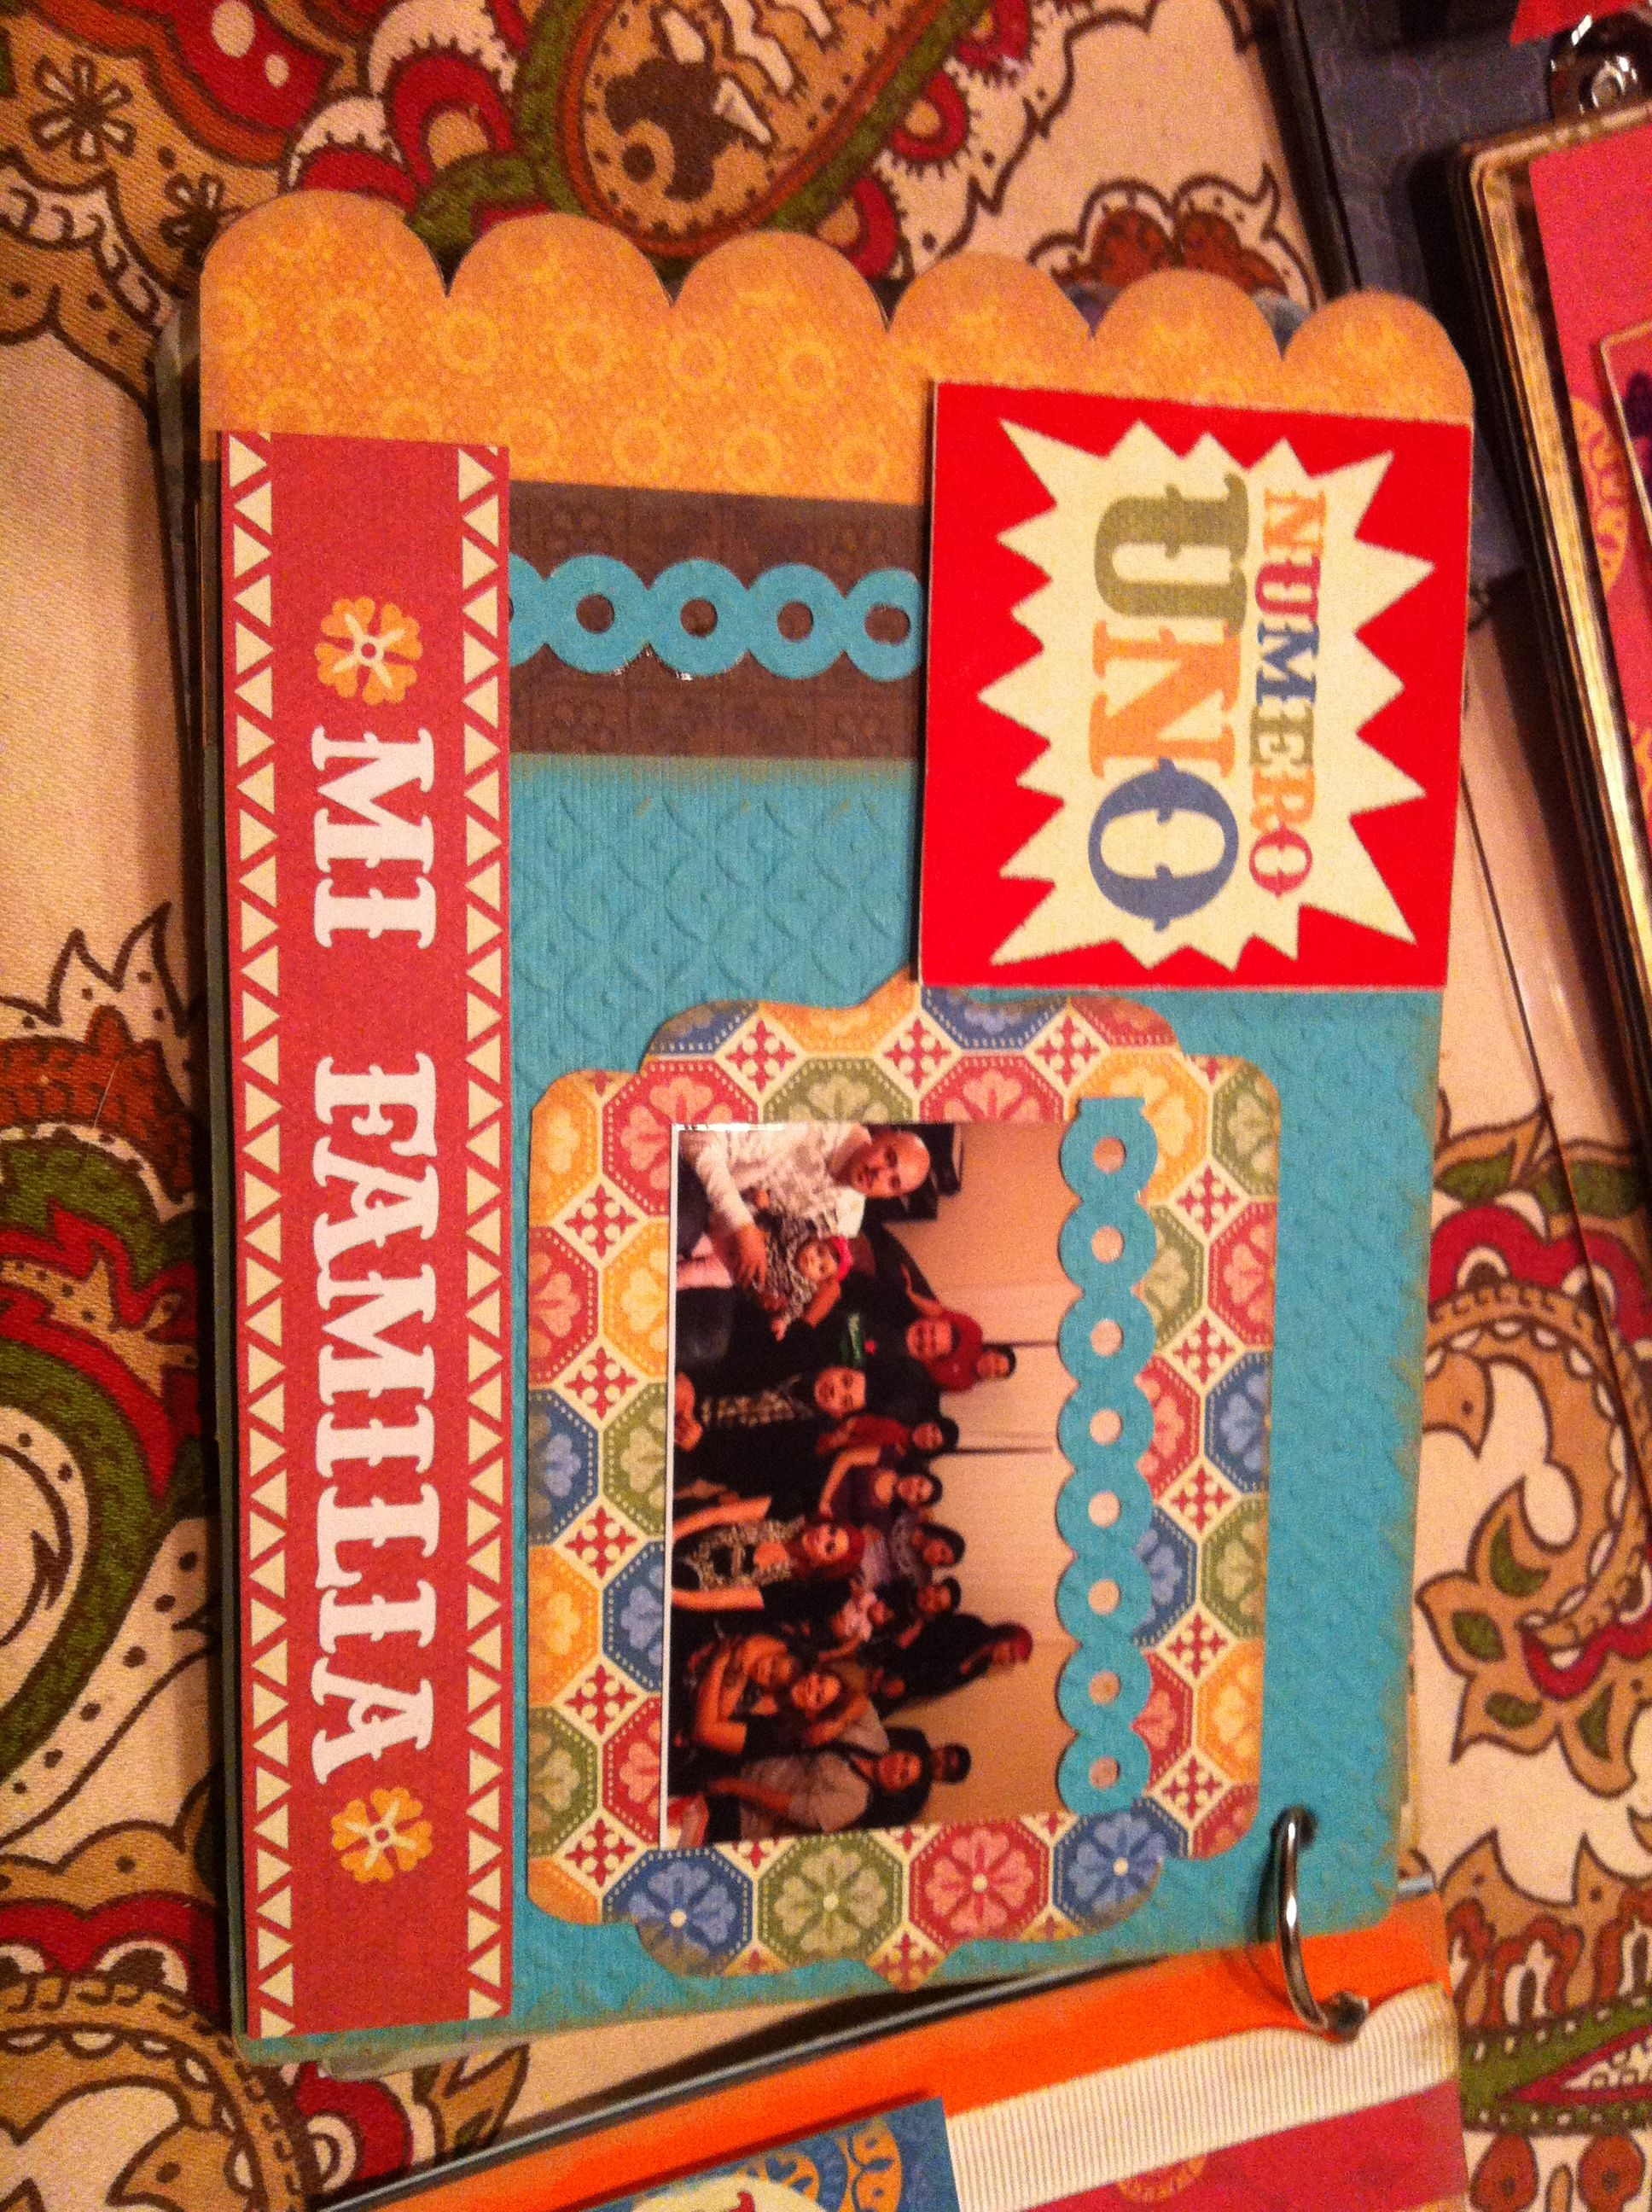 Family scrapbook ideas on pinterest - Family Scrapbook Page